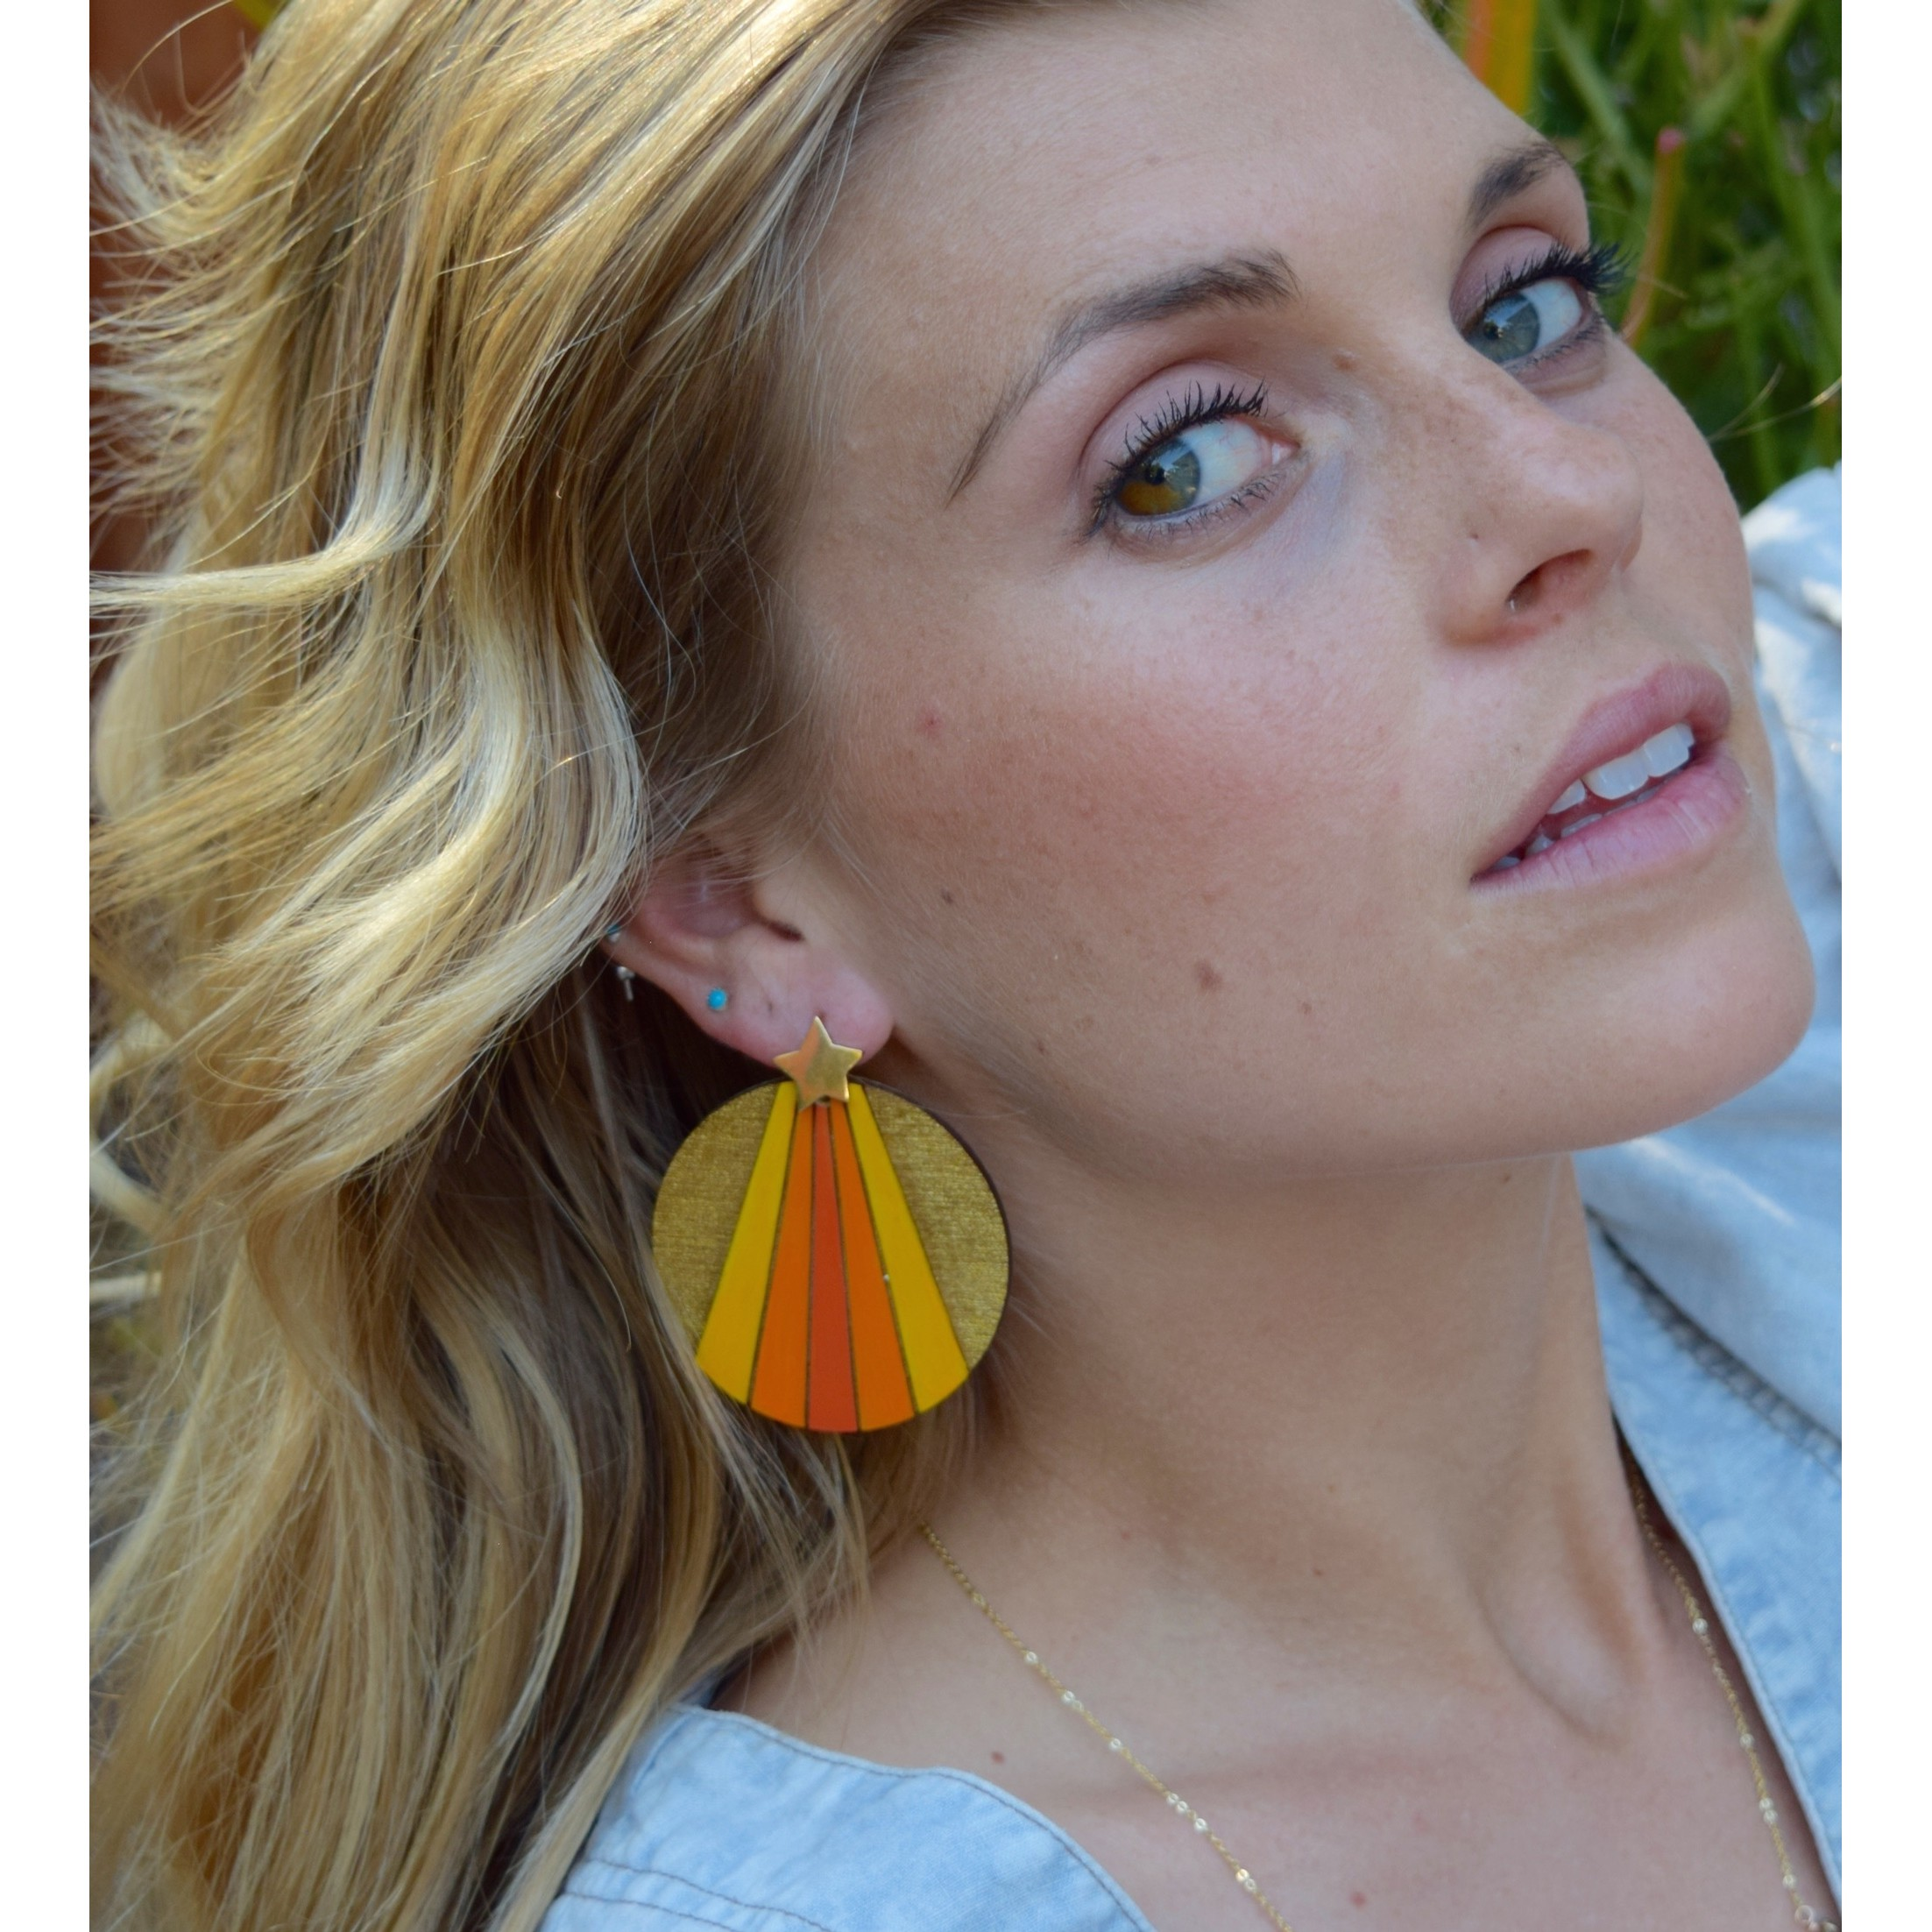 Luminate Earrings - Orange Rainbow